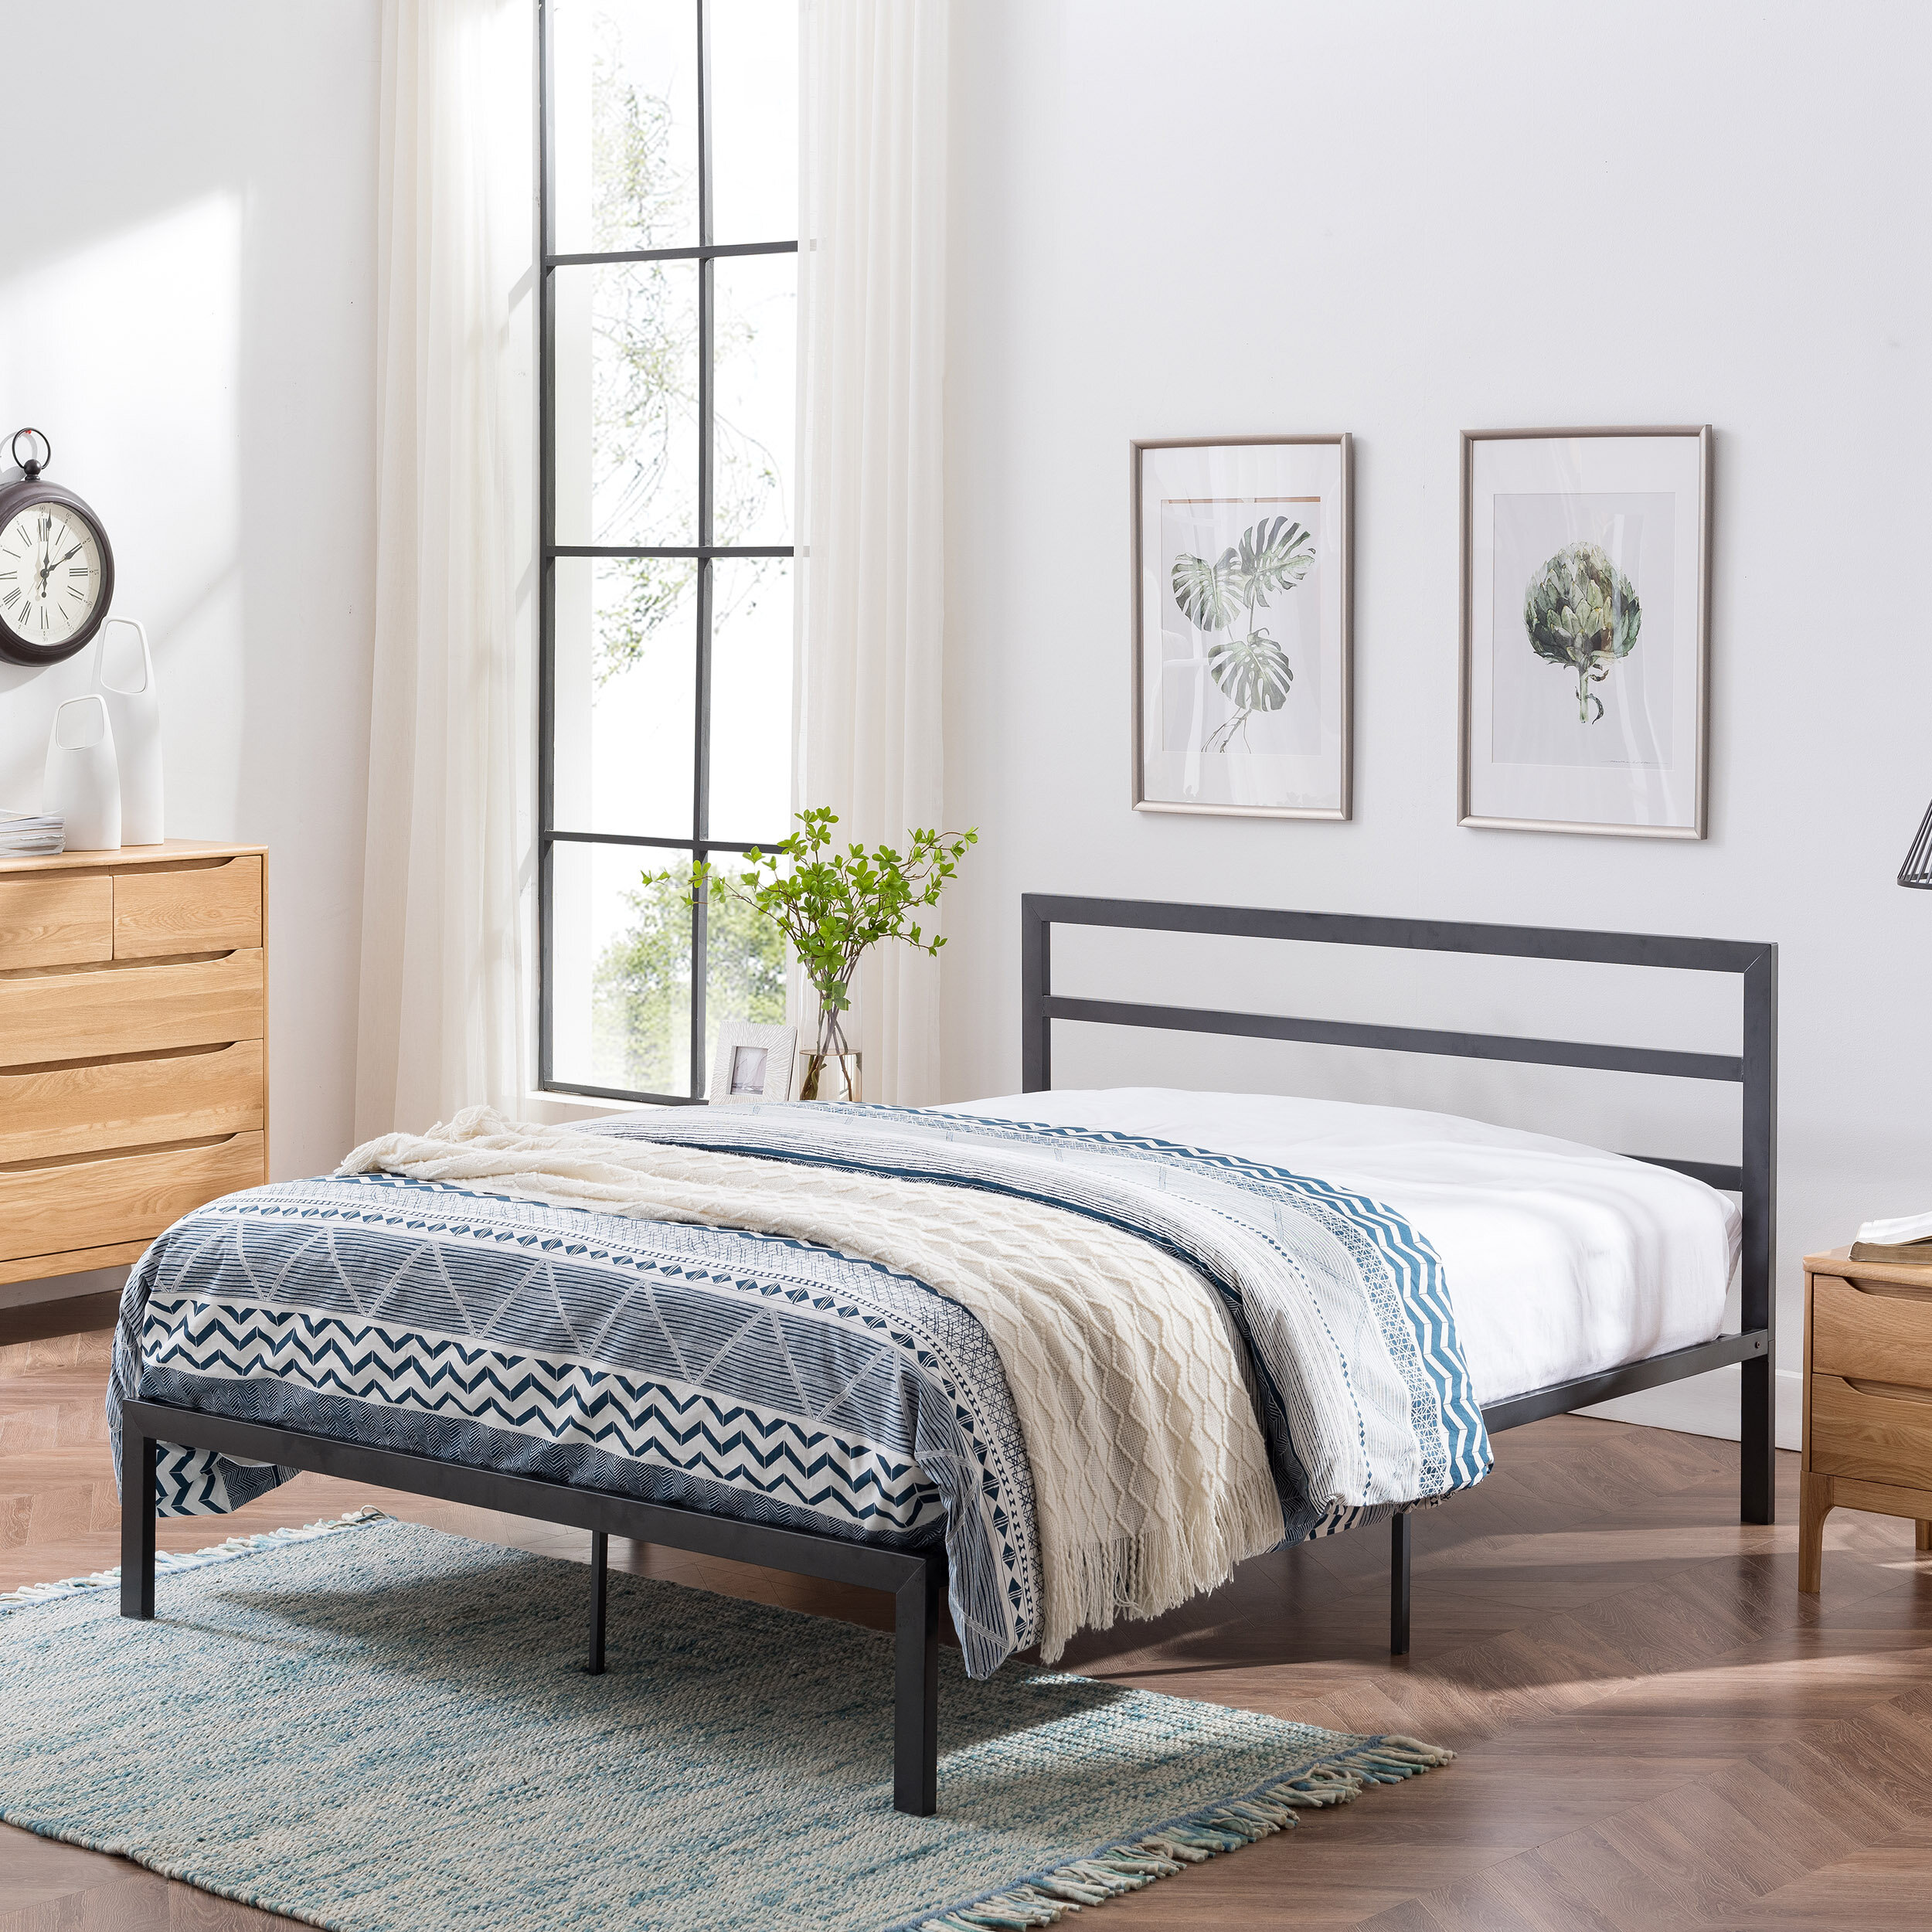 Alwyn Home Denver Modern Iron Bed Frame Reviews Wayfair